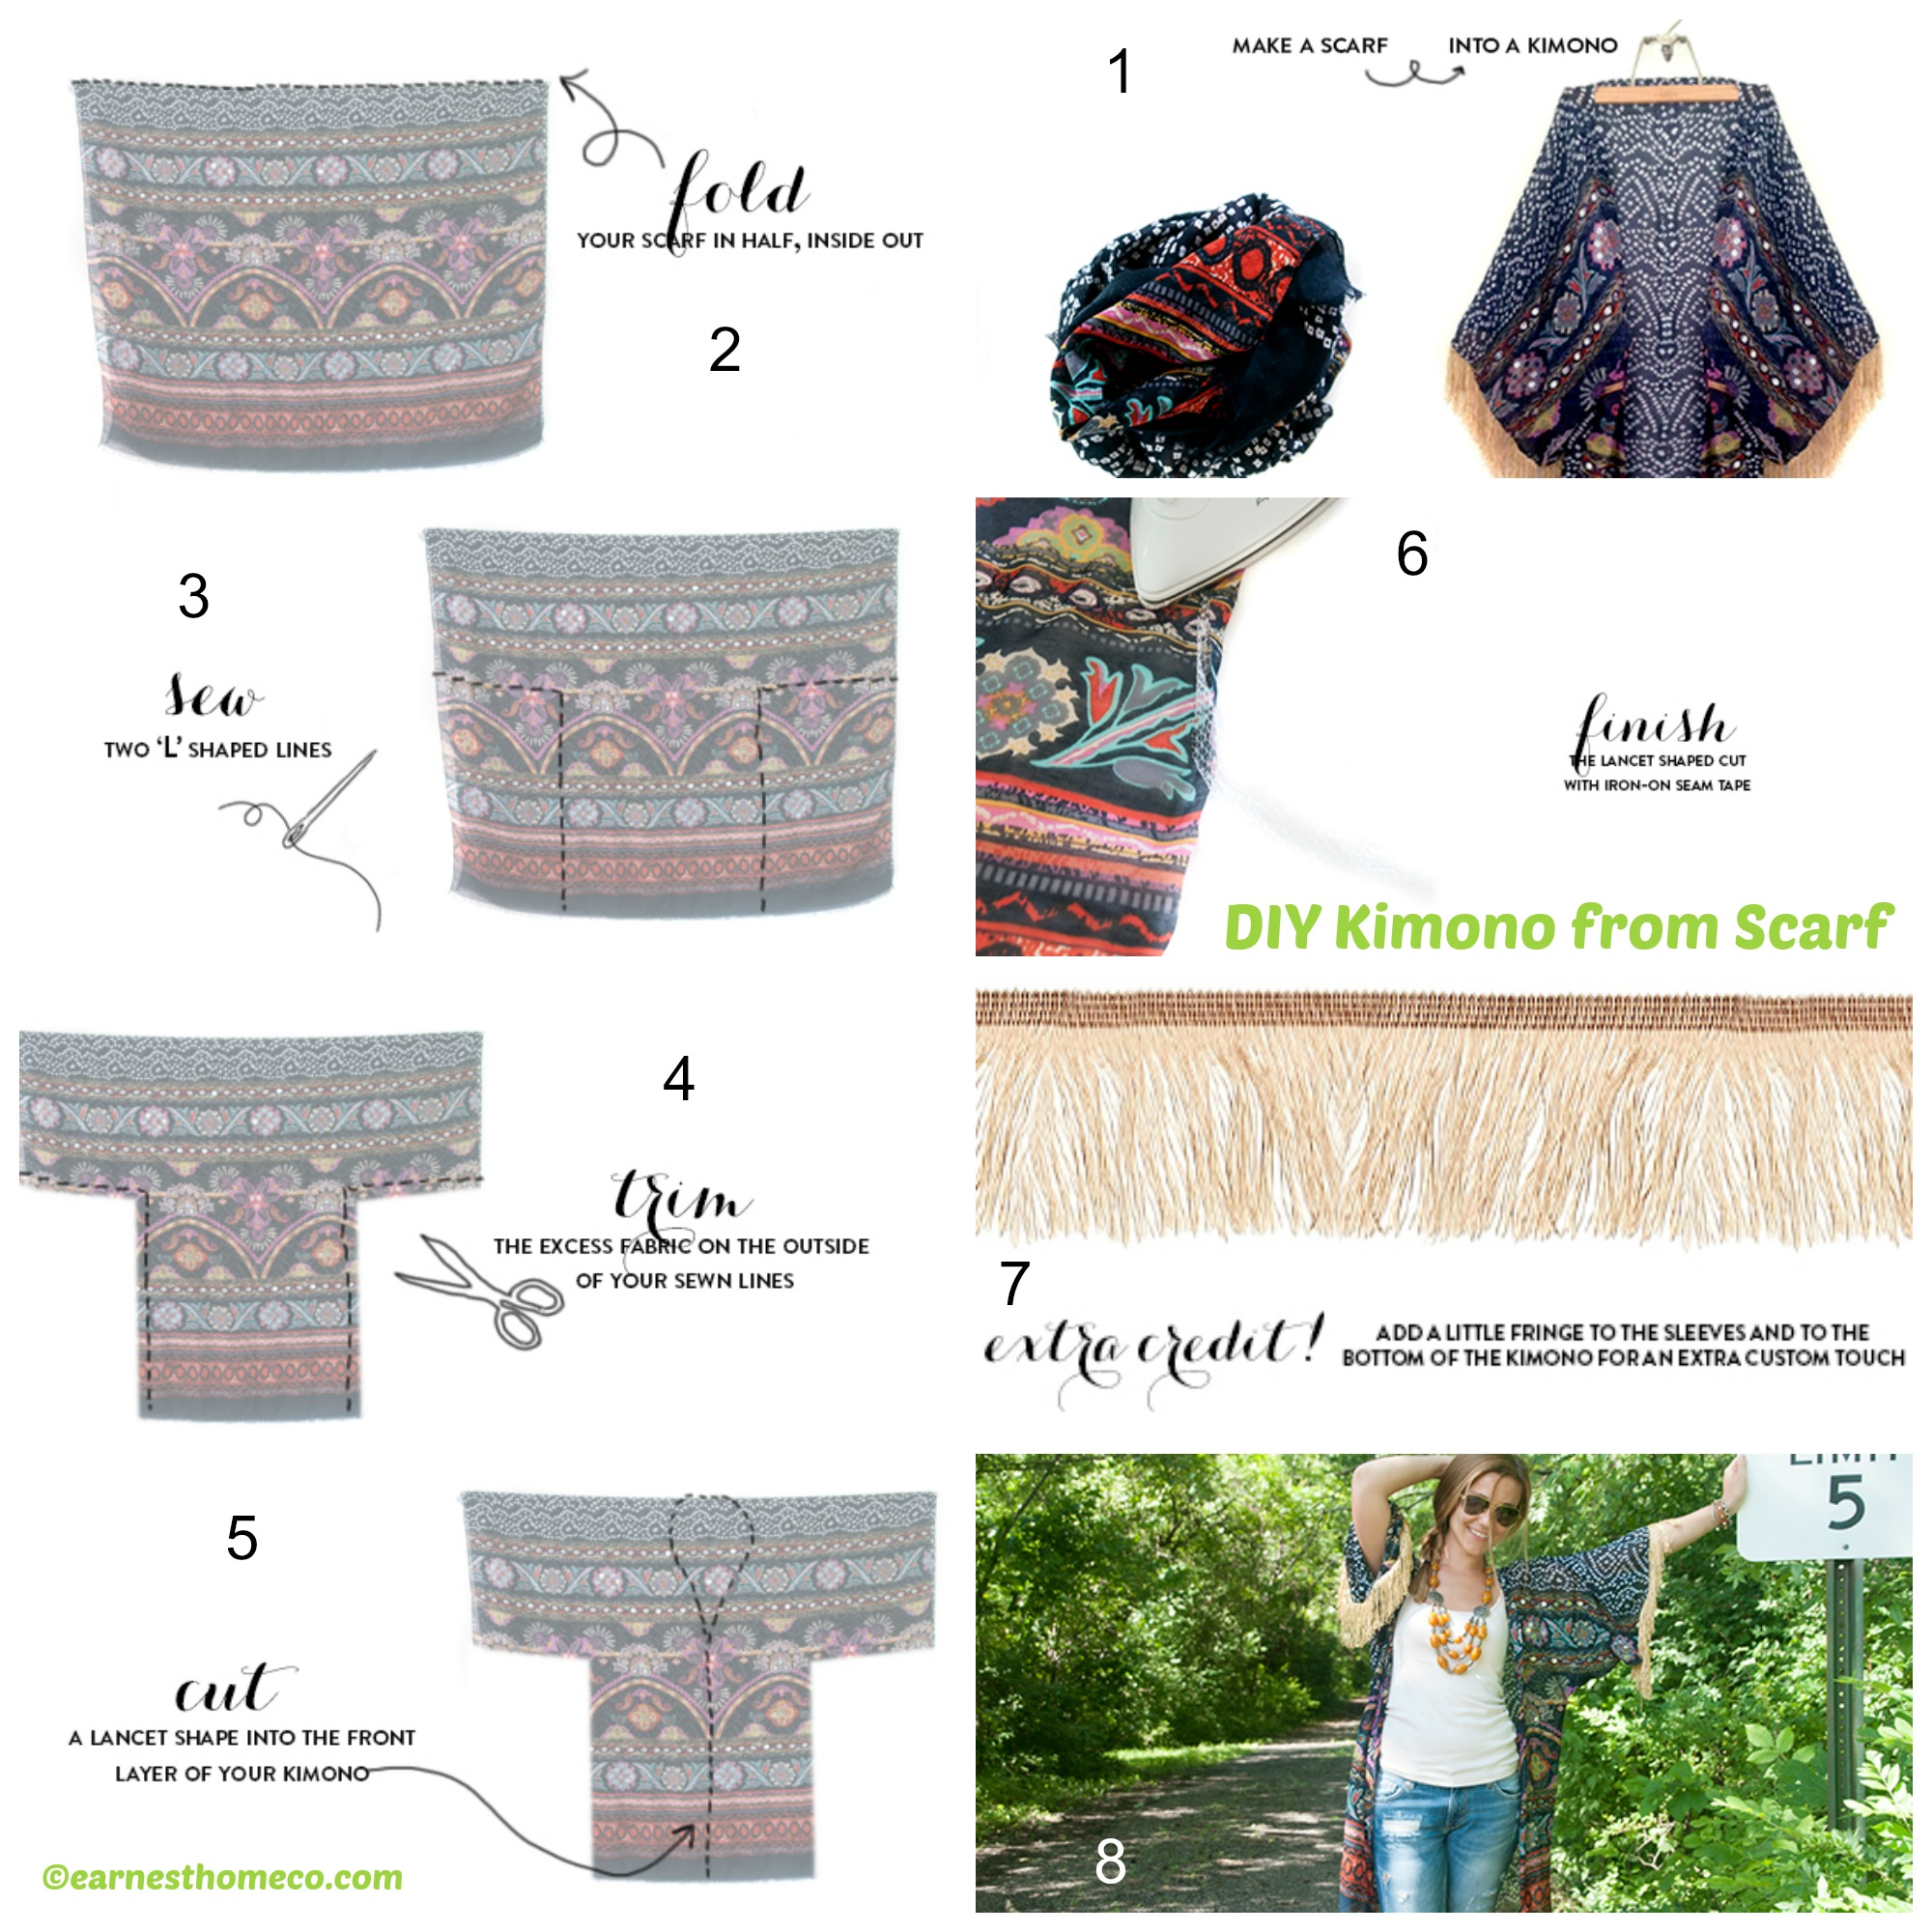 How to make a Kimono from Scarf